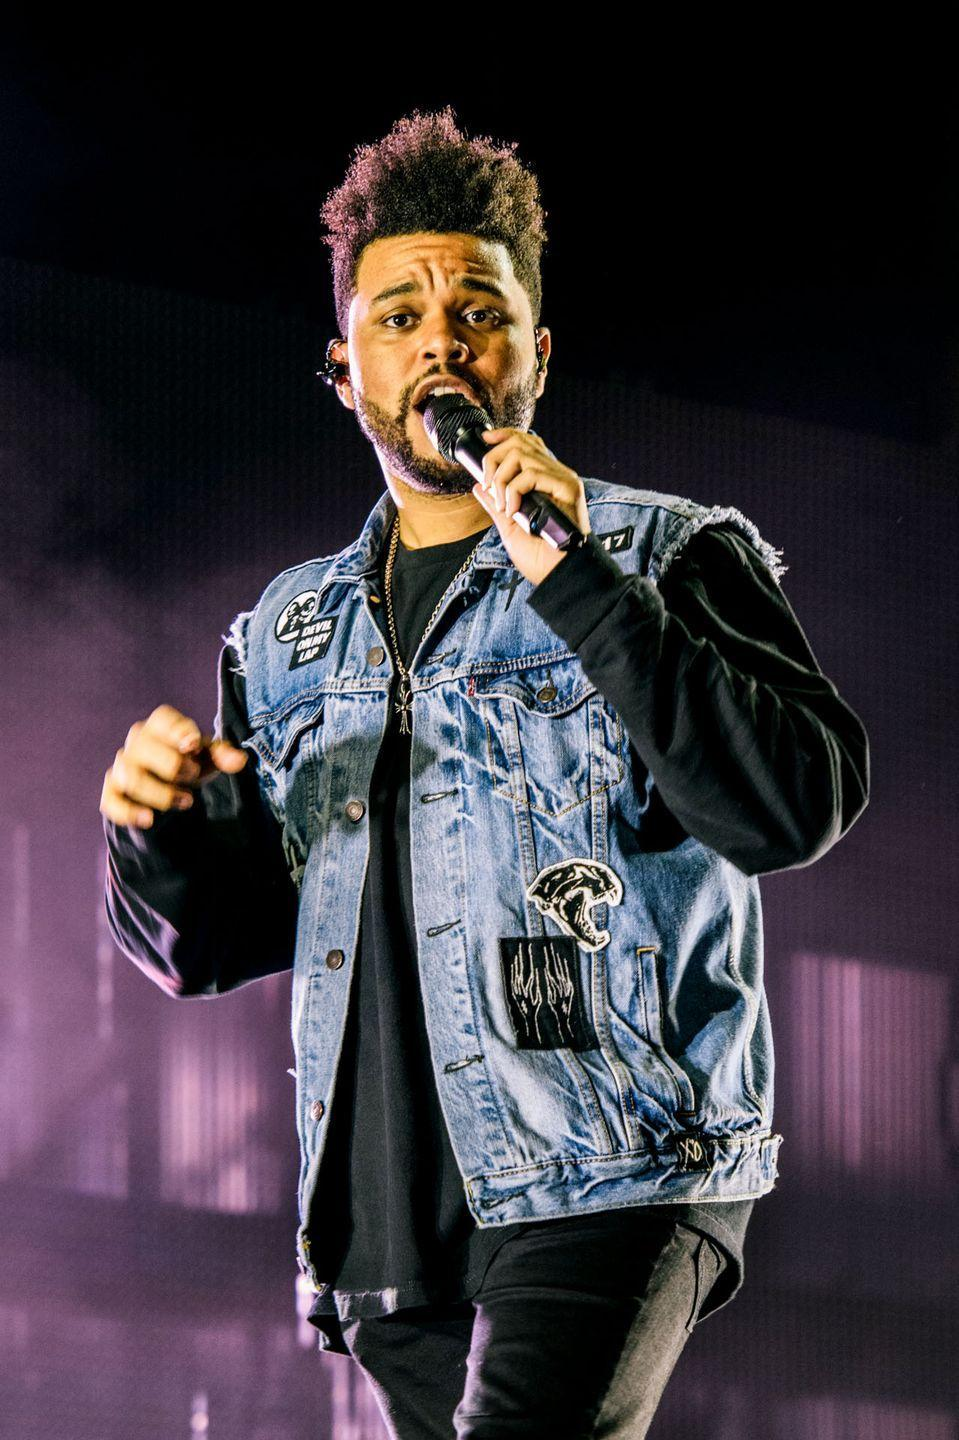 """<p><strong>Born</strong>: Abel Makkonen Tesfaye<strong><br></strong></p><p>It probably goes without saying that The Weeknd's first name is not """"The,"""" and his last name not """"Weeknd."""" The singer was born as Abel Makkonen Tesfaye. </p><p>He revealed during a <a href=""""http://www.mtv.com/news/1714103/the-weeknd-reddit-ama/"""" rel=""""nofollow noopener"""" target=""""_blank"""" data-ylk=""""slk:Reddit Ask Me Anything"""" class=""""link rapid-noclick-resp"""">Reddit Ask Me Anything</a> that he chose his stage name after leaving home as a teenager. """"I left home when I was about 17 dropped out of high school and convinced Lamar to do the same lol,"""" he said, referring to a member of his crew. """"We grabbed our mattresses from our parents threw it in our friends shitty van and left one weekend and never came back home. It was gonna be the title of HOB [<em>House of Balloons</em>]. I hated my name at the time though so I tried it as a stage name. It sounded cool. I took out the """"e"""" because there was already a Canadian band named the weekend (copyright issues).""""</p>"""